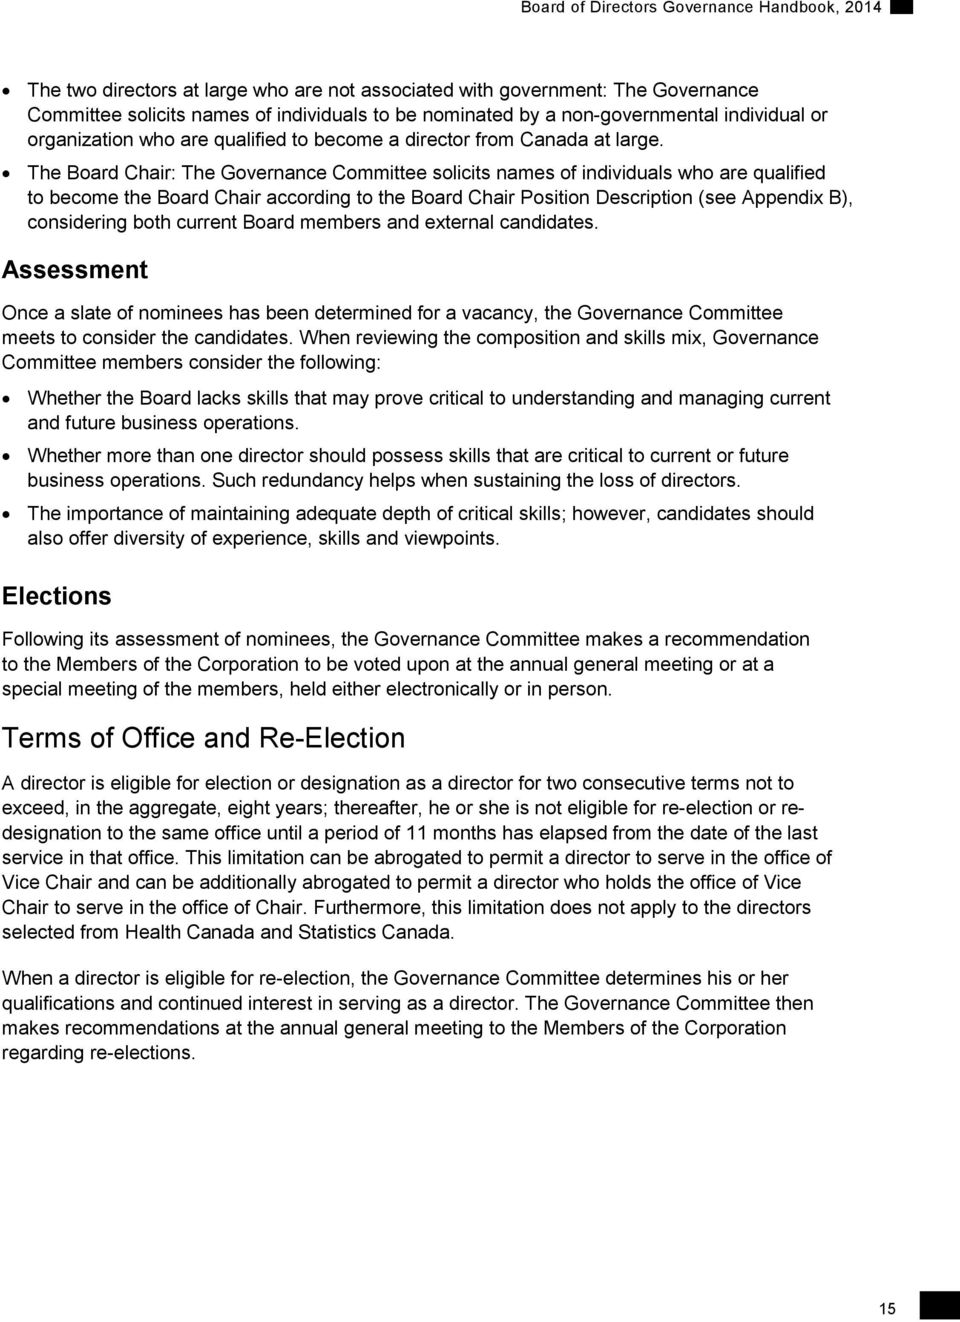 The Board Chair: The Governance Committee solicits names of individuals who are qualified to become the Board Chair according to the Board Chair Position Description (see Appendix B), considering